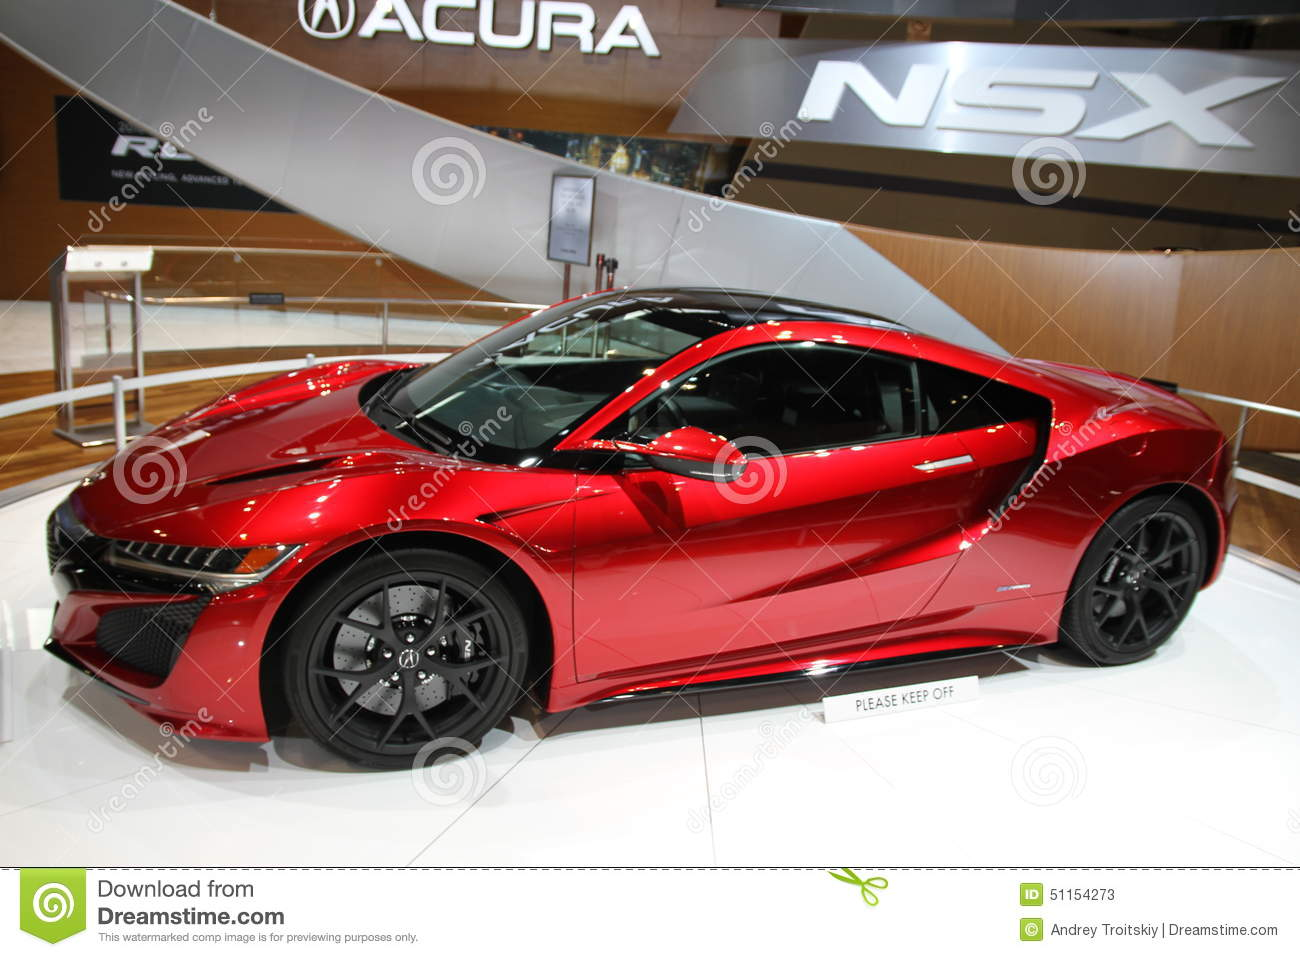 acura nsx supercar 2016 editorial stock photo. image of vehicle